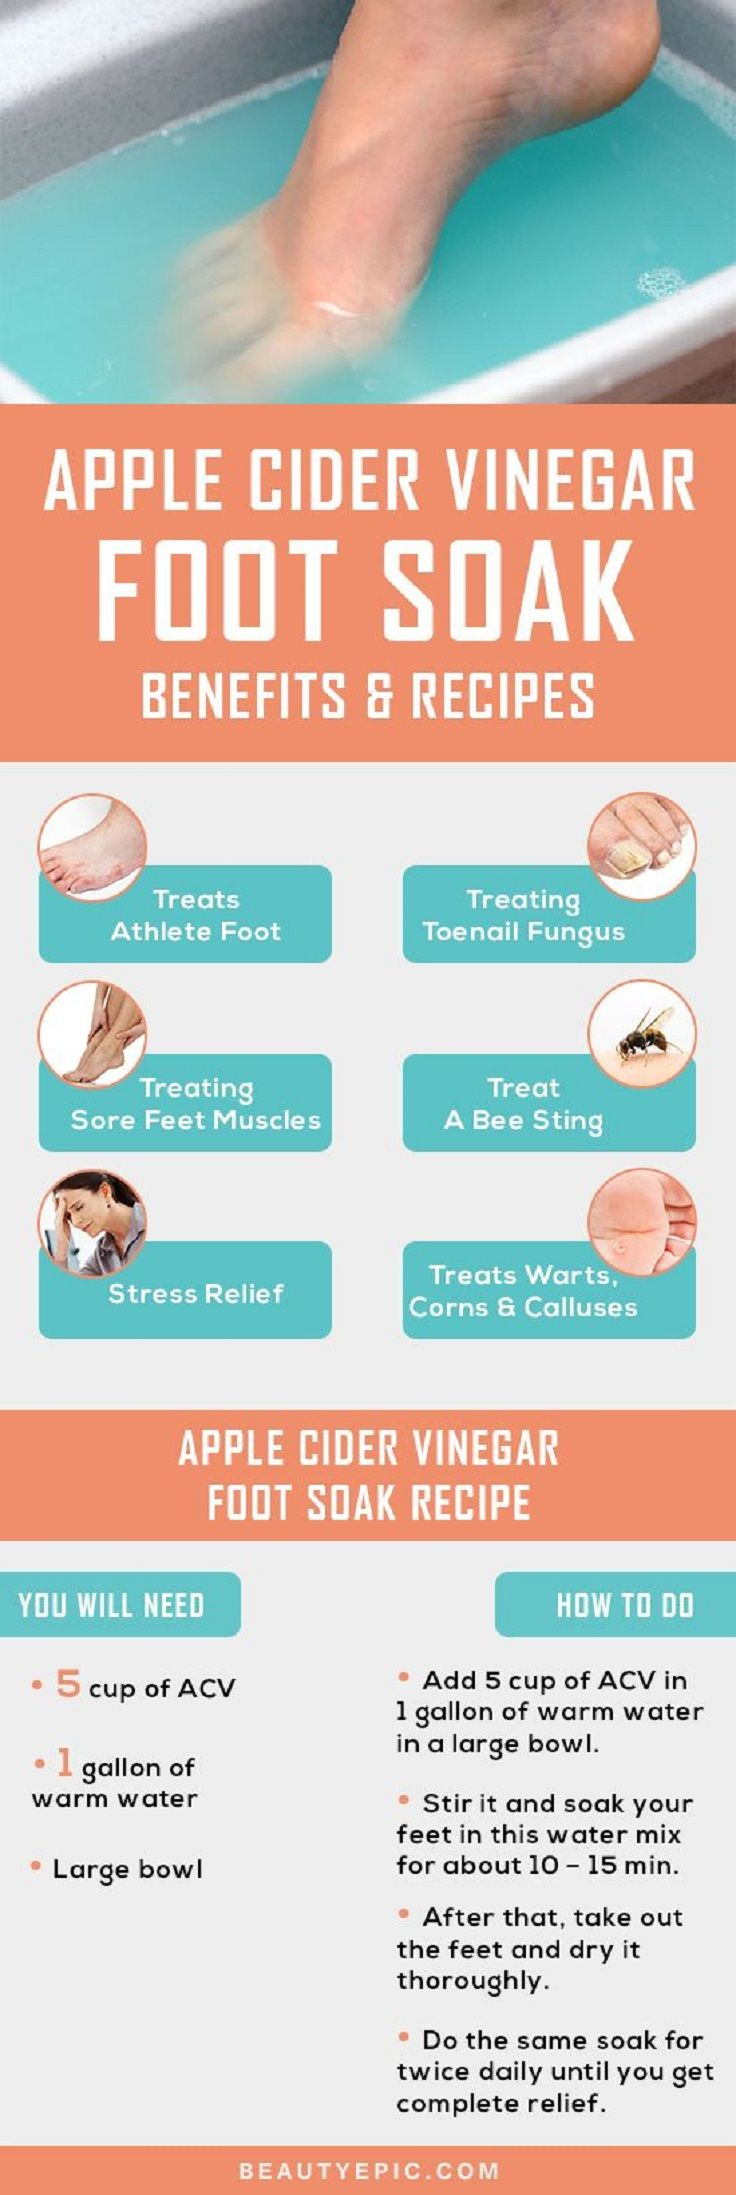 Effective Apple Cider Vinegar Foot Soak - Benefits and Recipes - 16 Recommended Skin Care Routine Tips and DIYs for A Healthy Glow This Summer